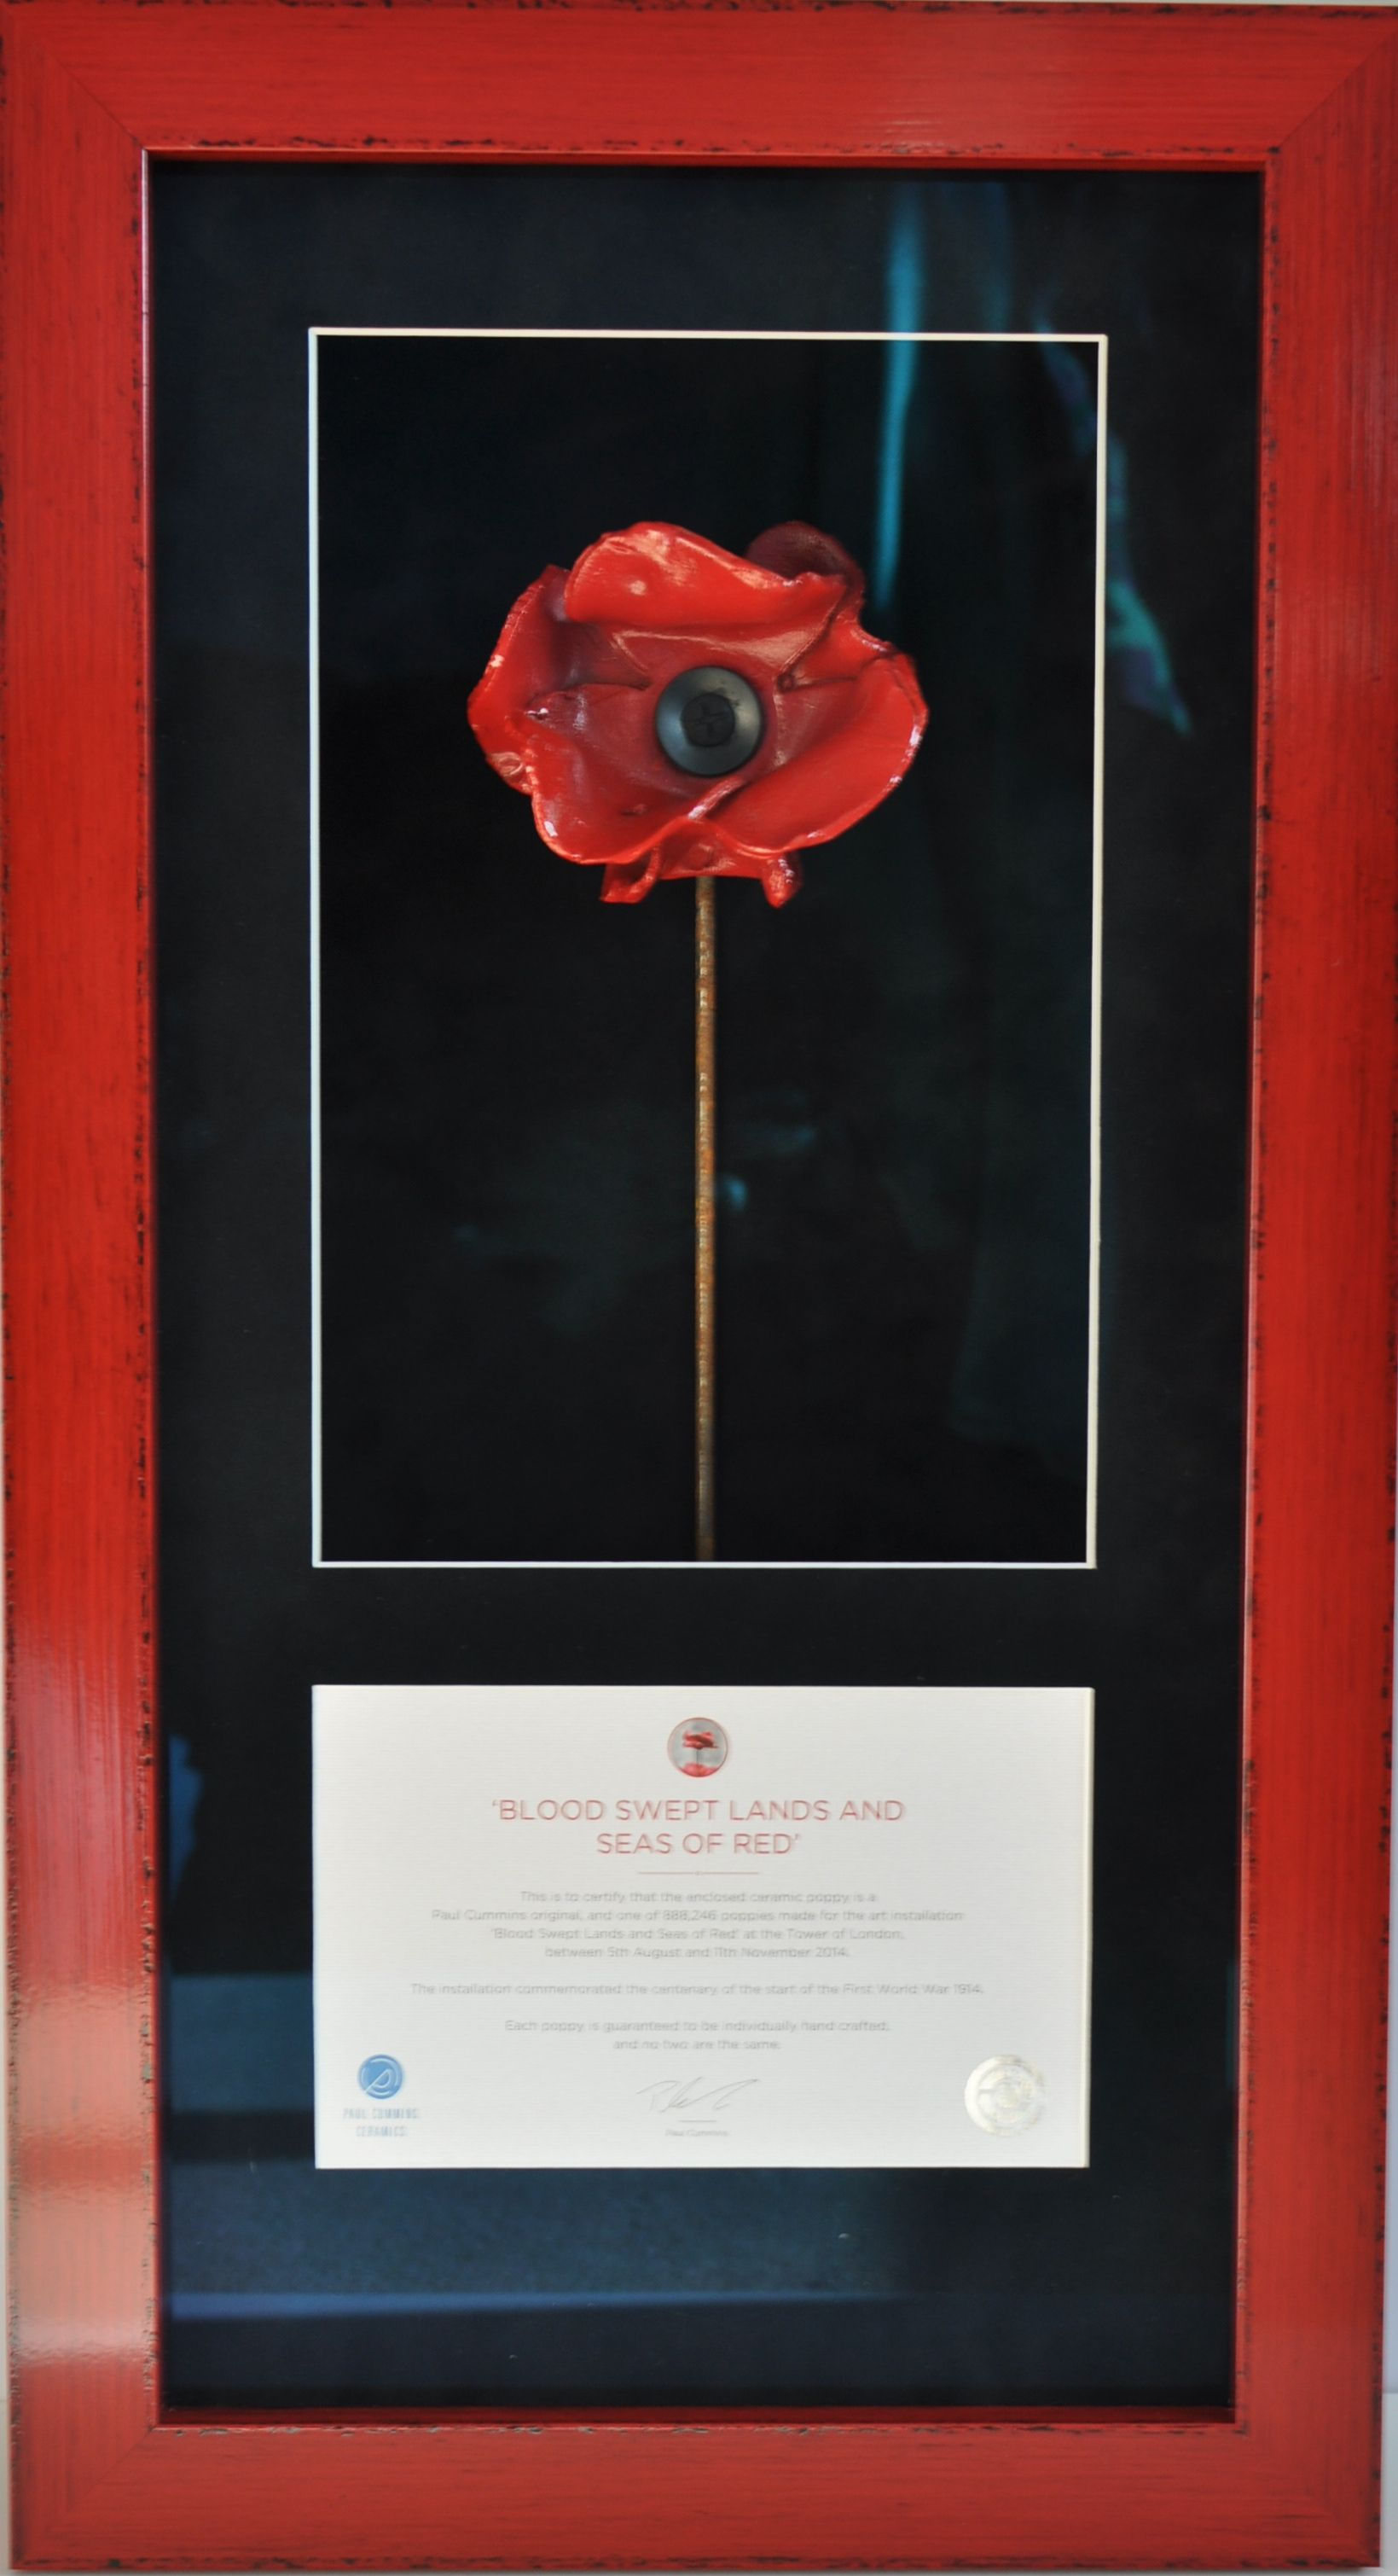 POPPY DISPLAY FRAME FOR TOWER OF LONDON WW1 CERAMIC POPPY